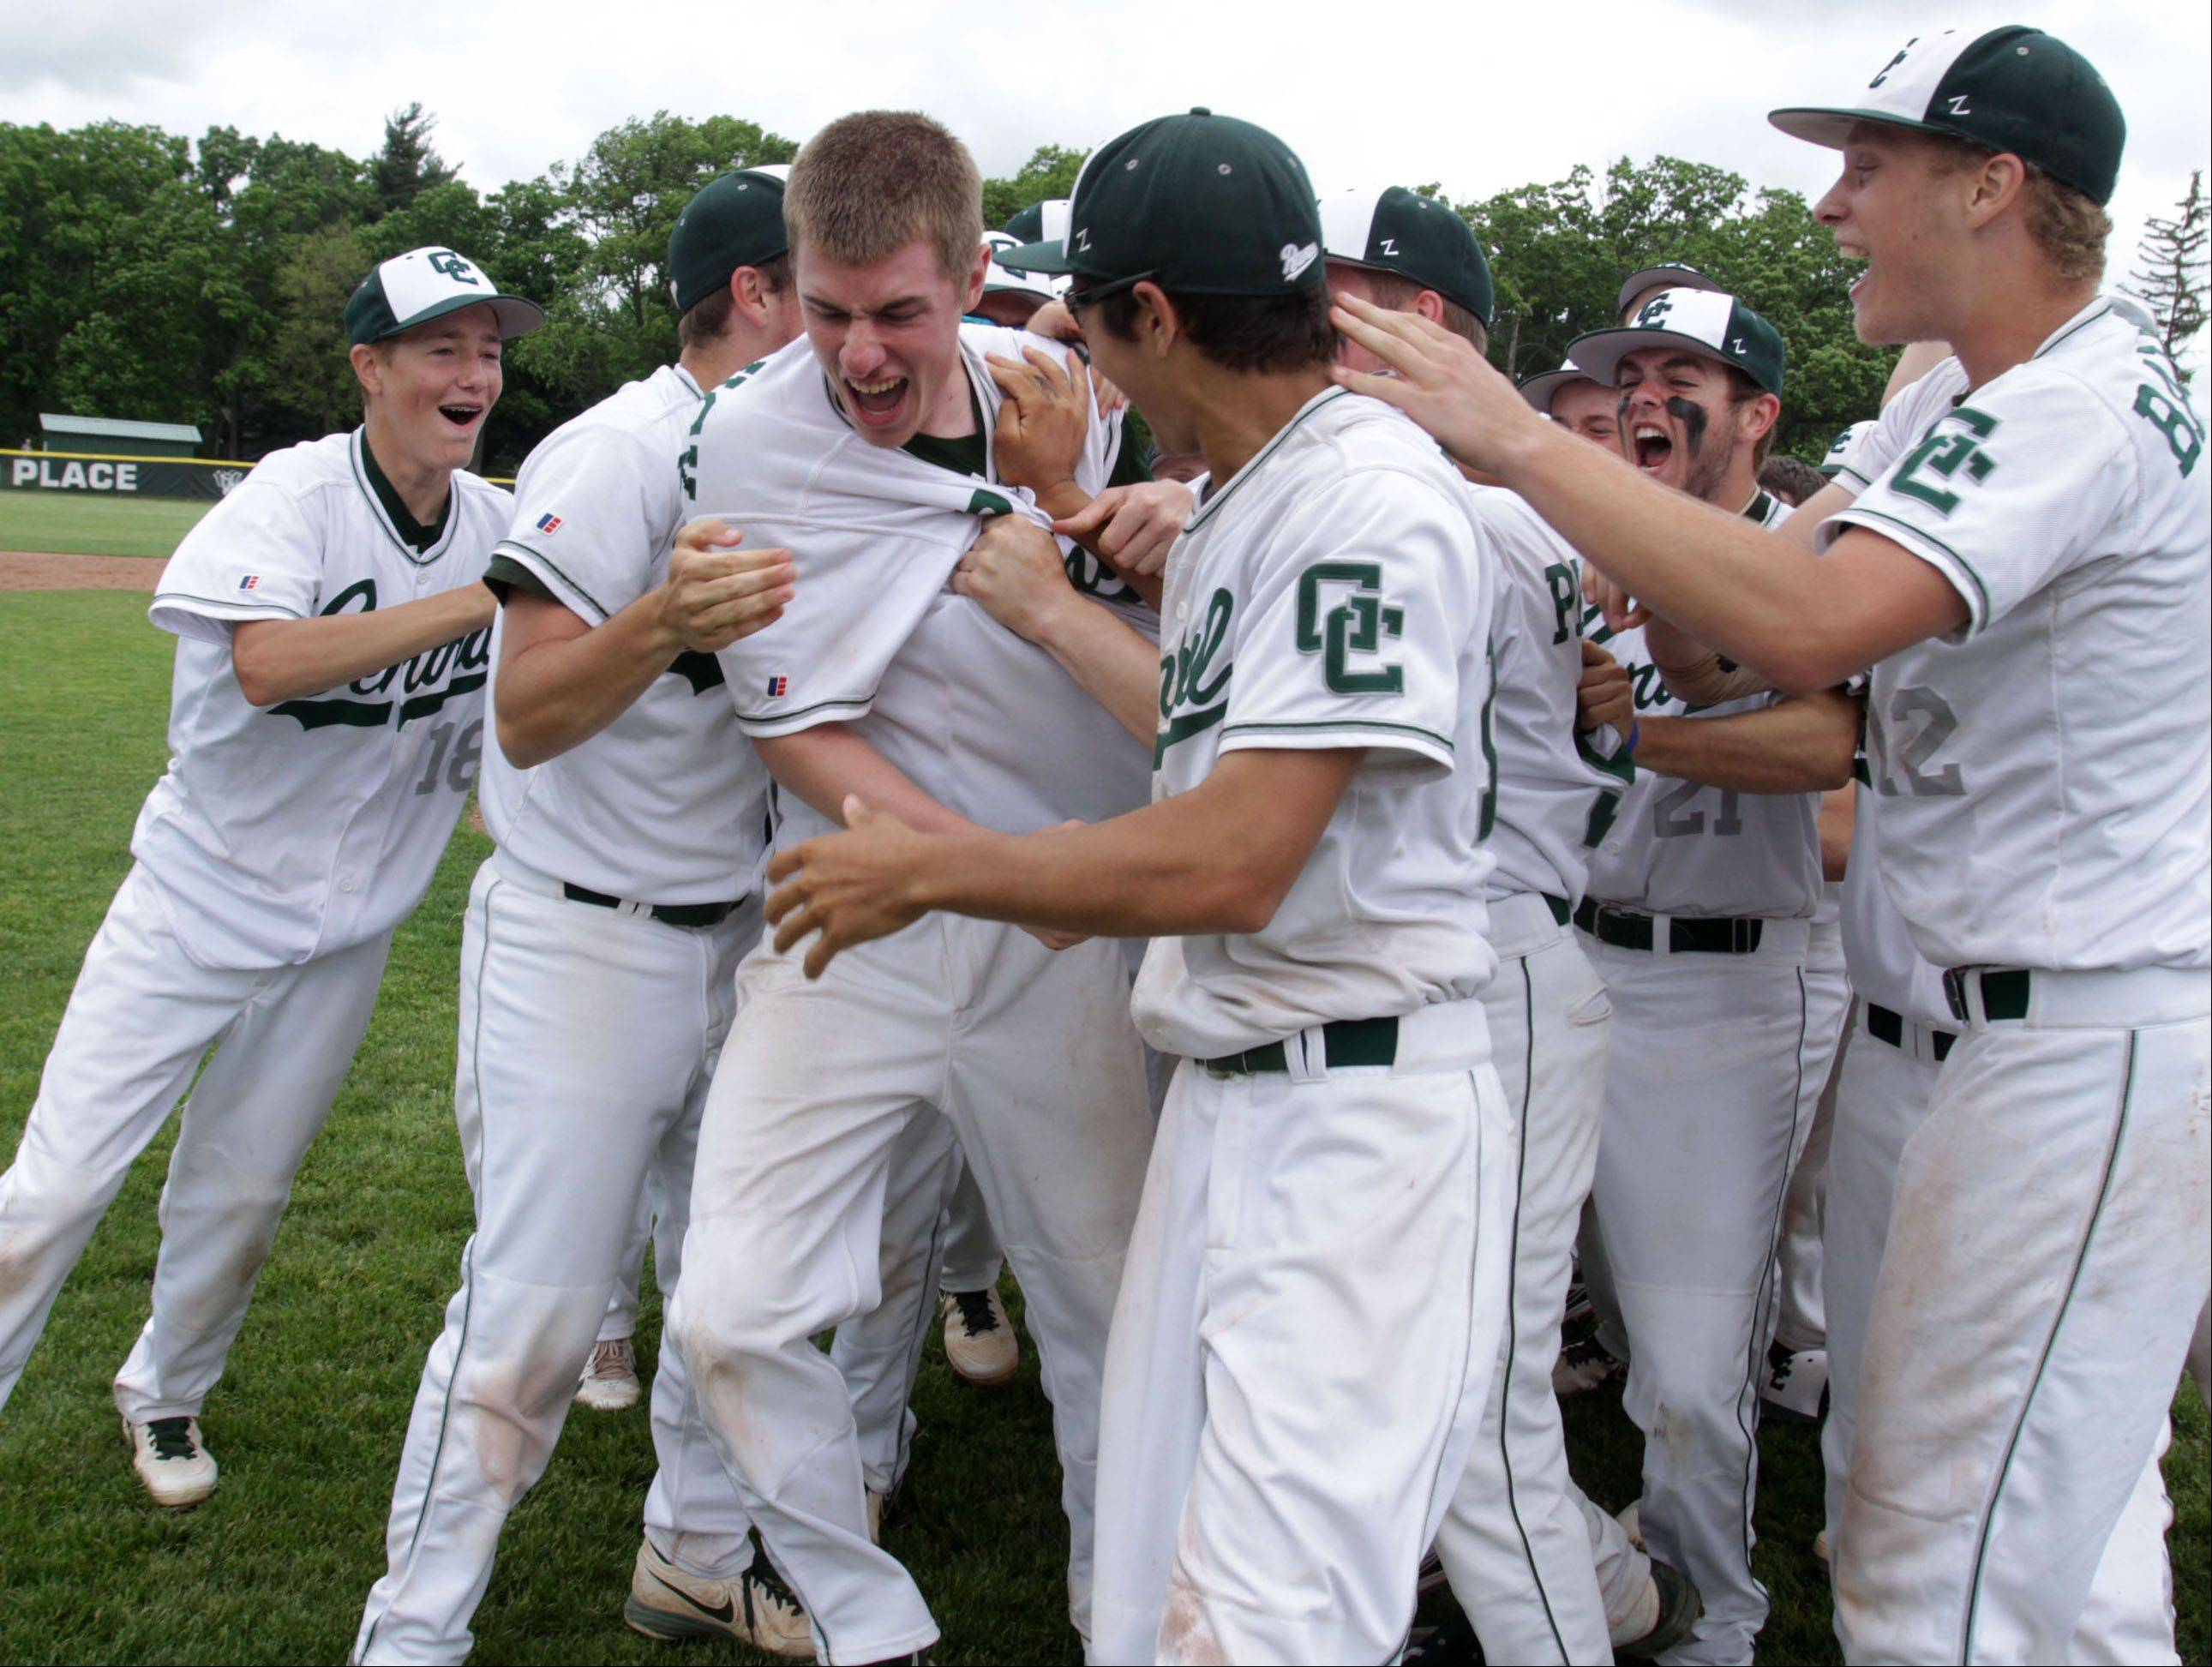 Grayslake Central relief pitcher Eric Skutnick, center left, is mobbed by teammates after recording the last out in the seventh inning as the Rams edged Wauconda 6-4 in Class 3A sectional final play Saturday.